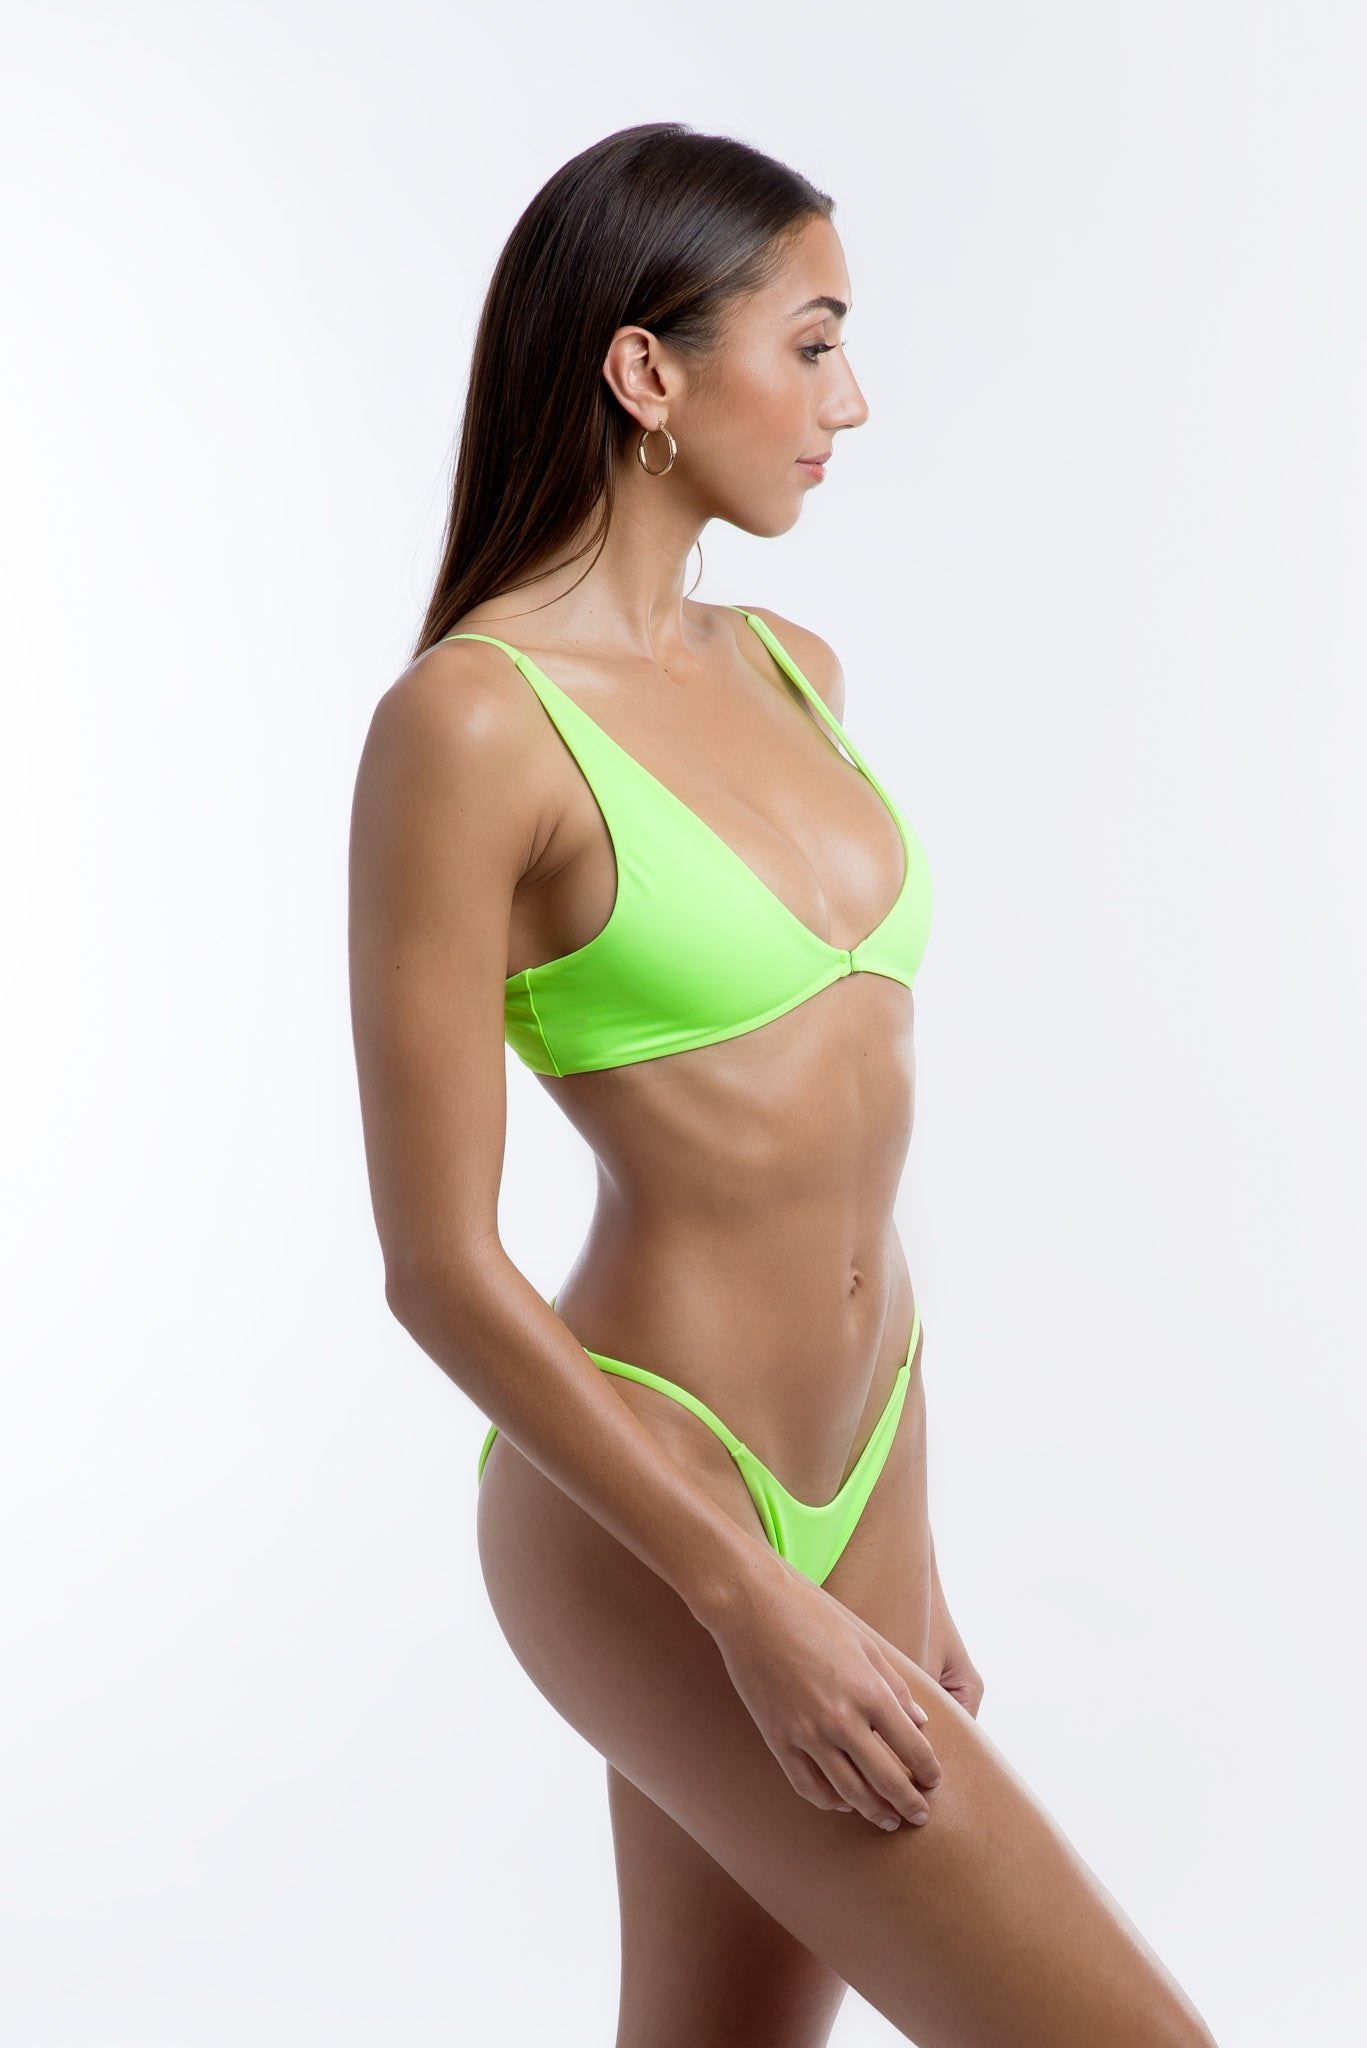 Cartia Bottoms Neon Green